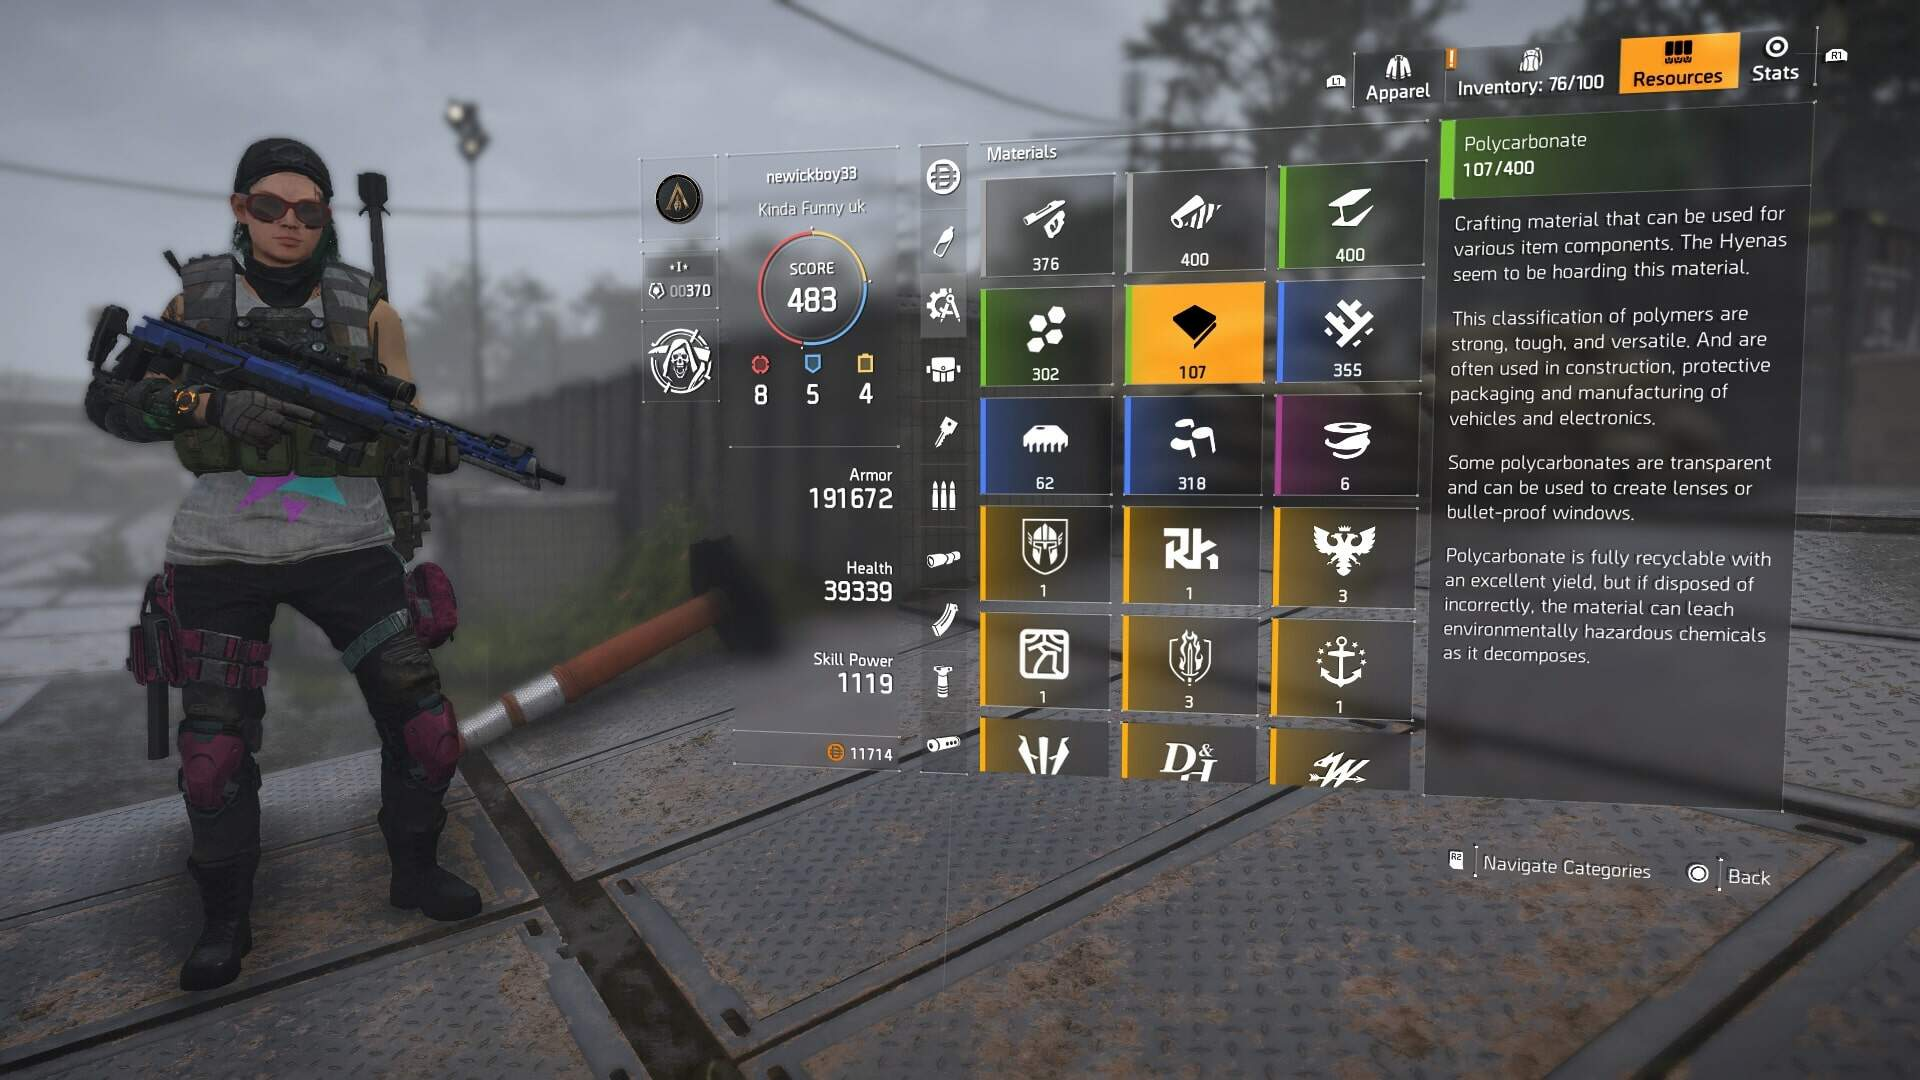 The Division 2 Polycarbonate - Polycarbonate Farming, Where to Get Polycarbonate Fast